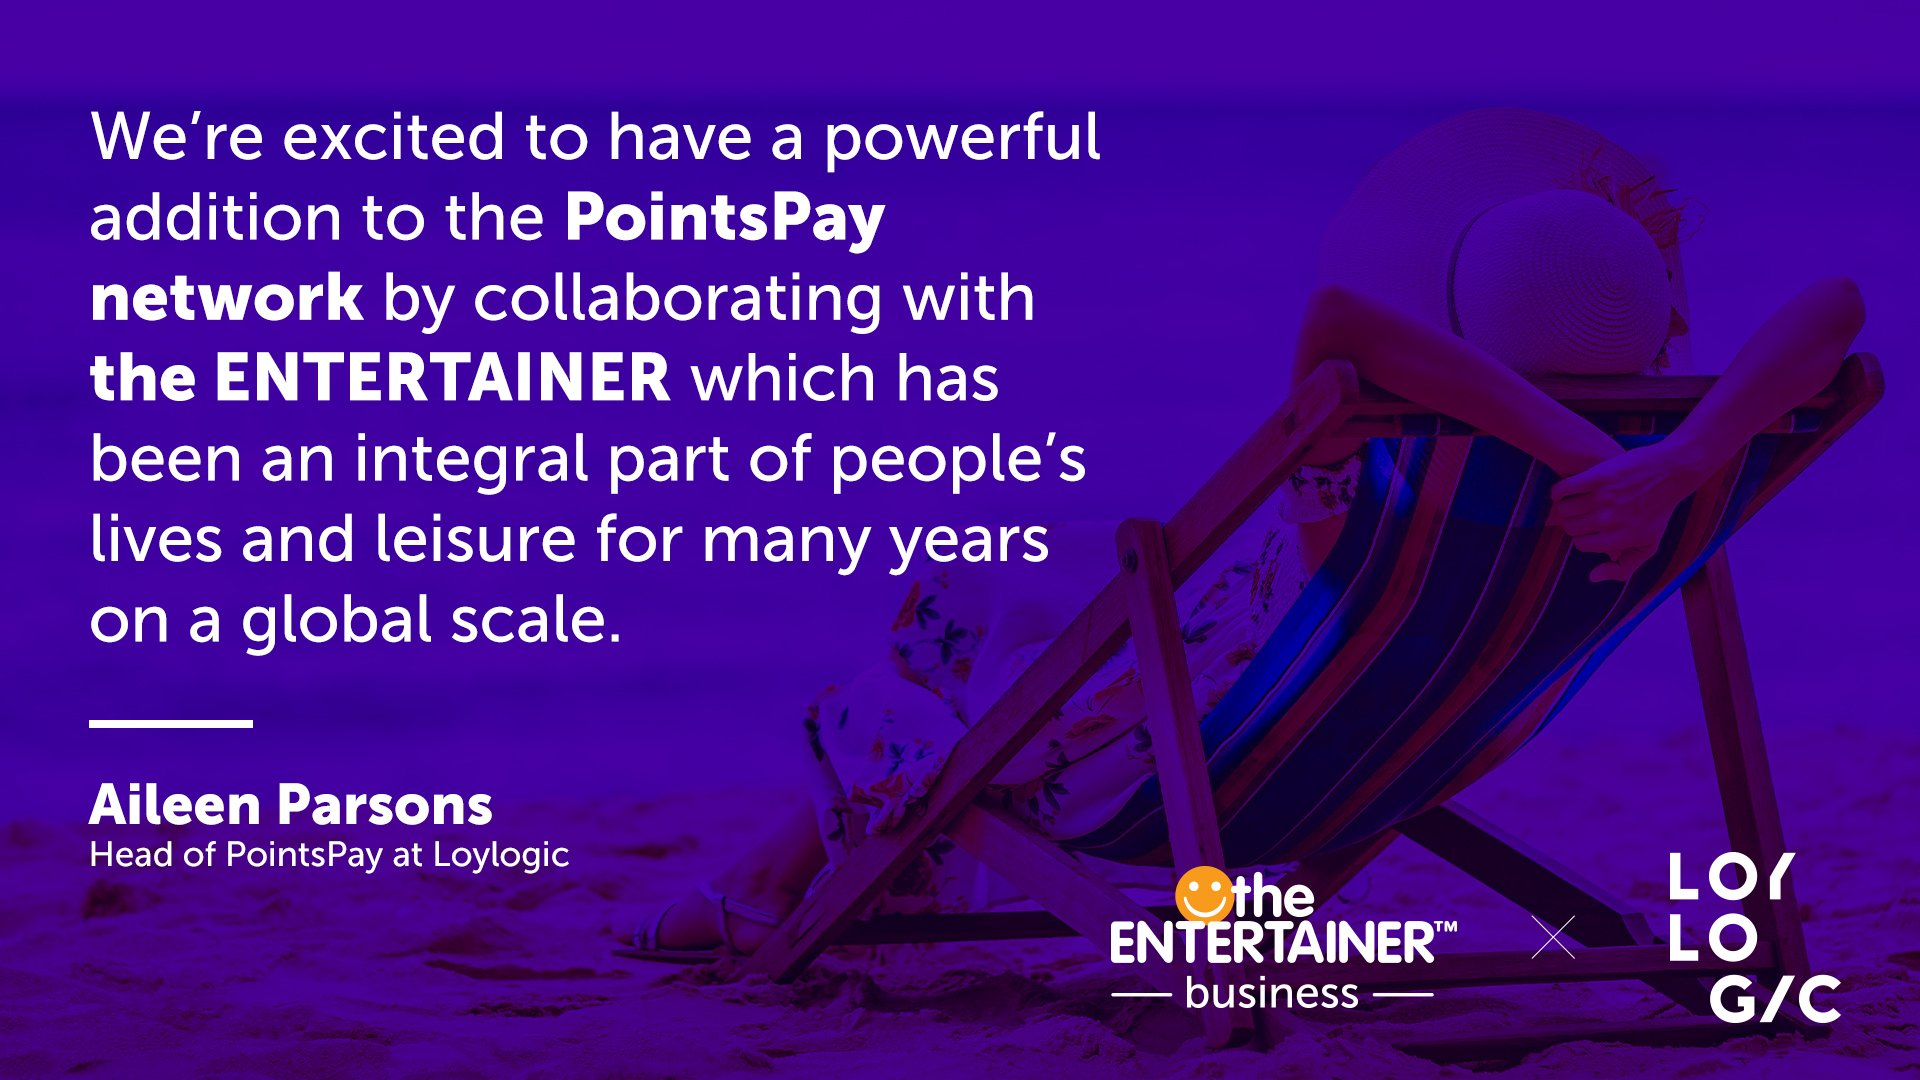 The ENTERTAINER Partners With PointsPay To Offer Members the Power to Pay with Loyalty Points